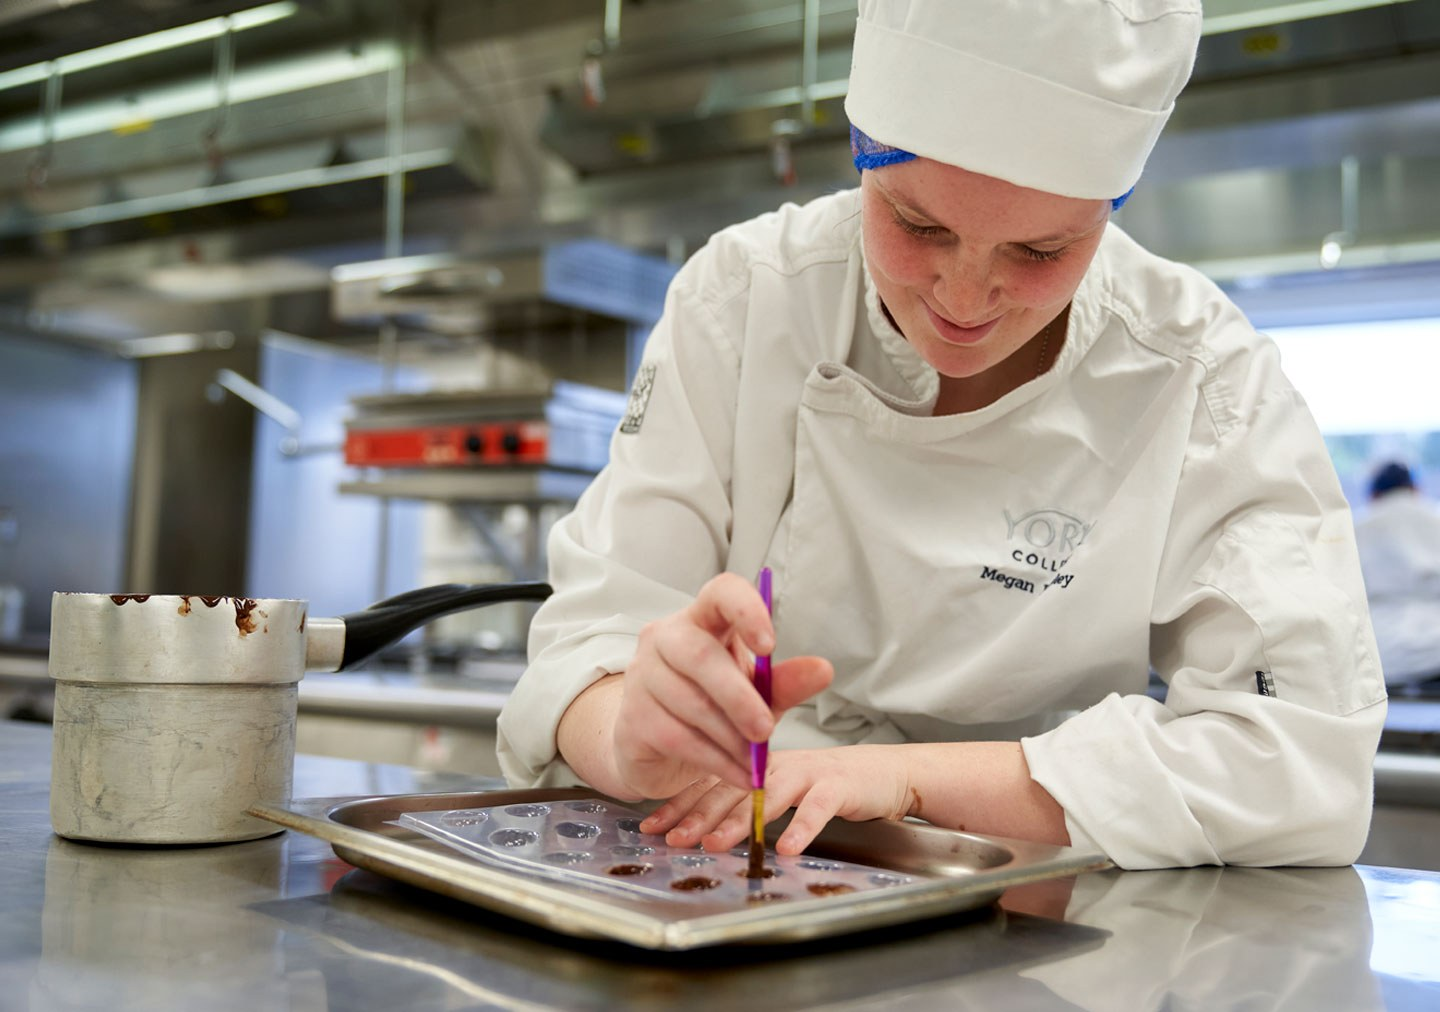 Patisserie and Confectionery student putting chocolate in to moulds